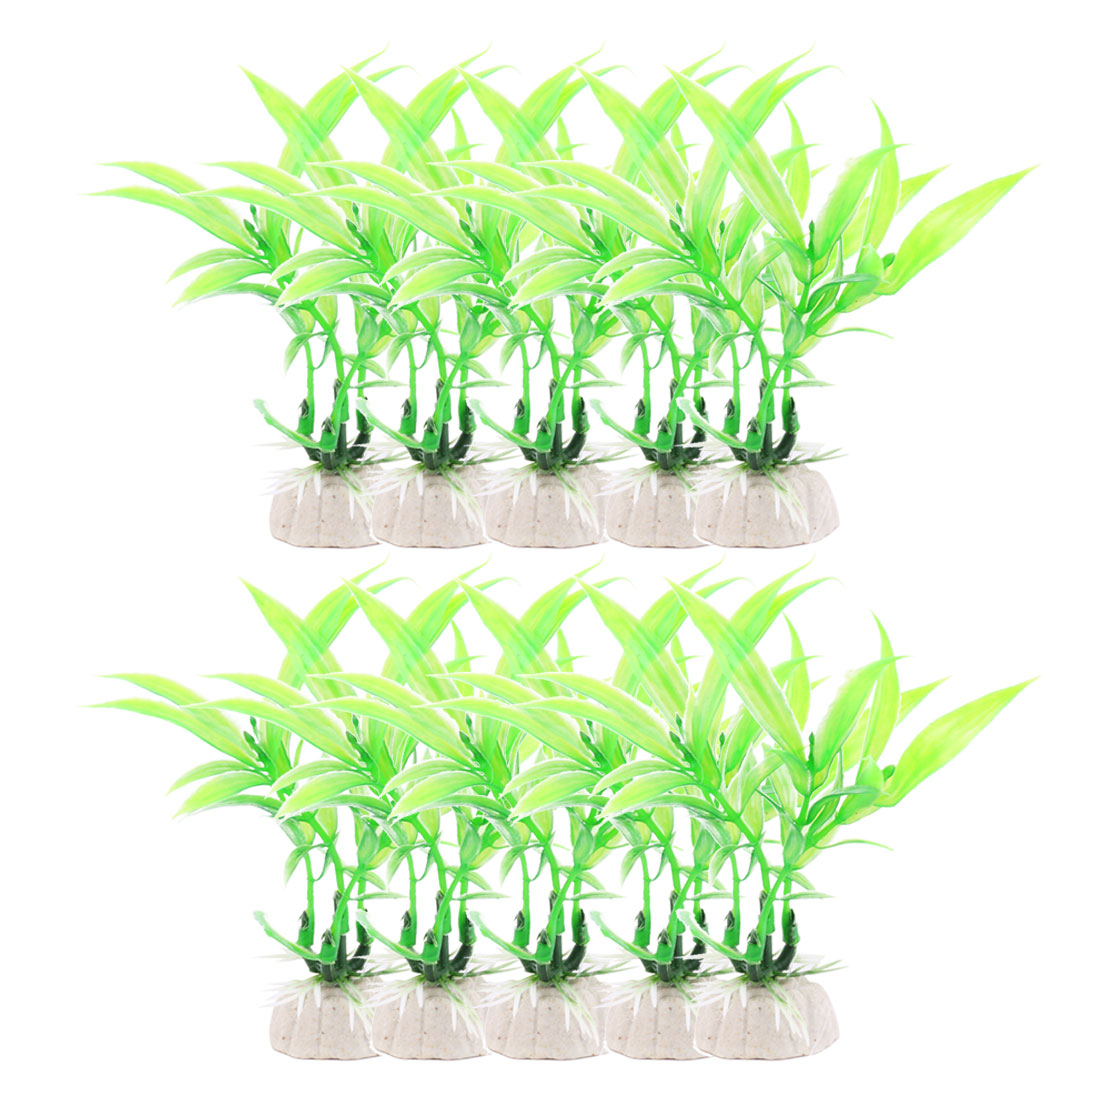 10 pcs Aqua Landscape Green Plastic Aquarium Plants Betta Fish Tank Ornament